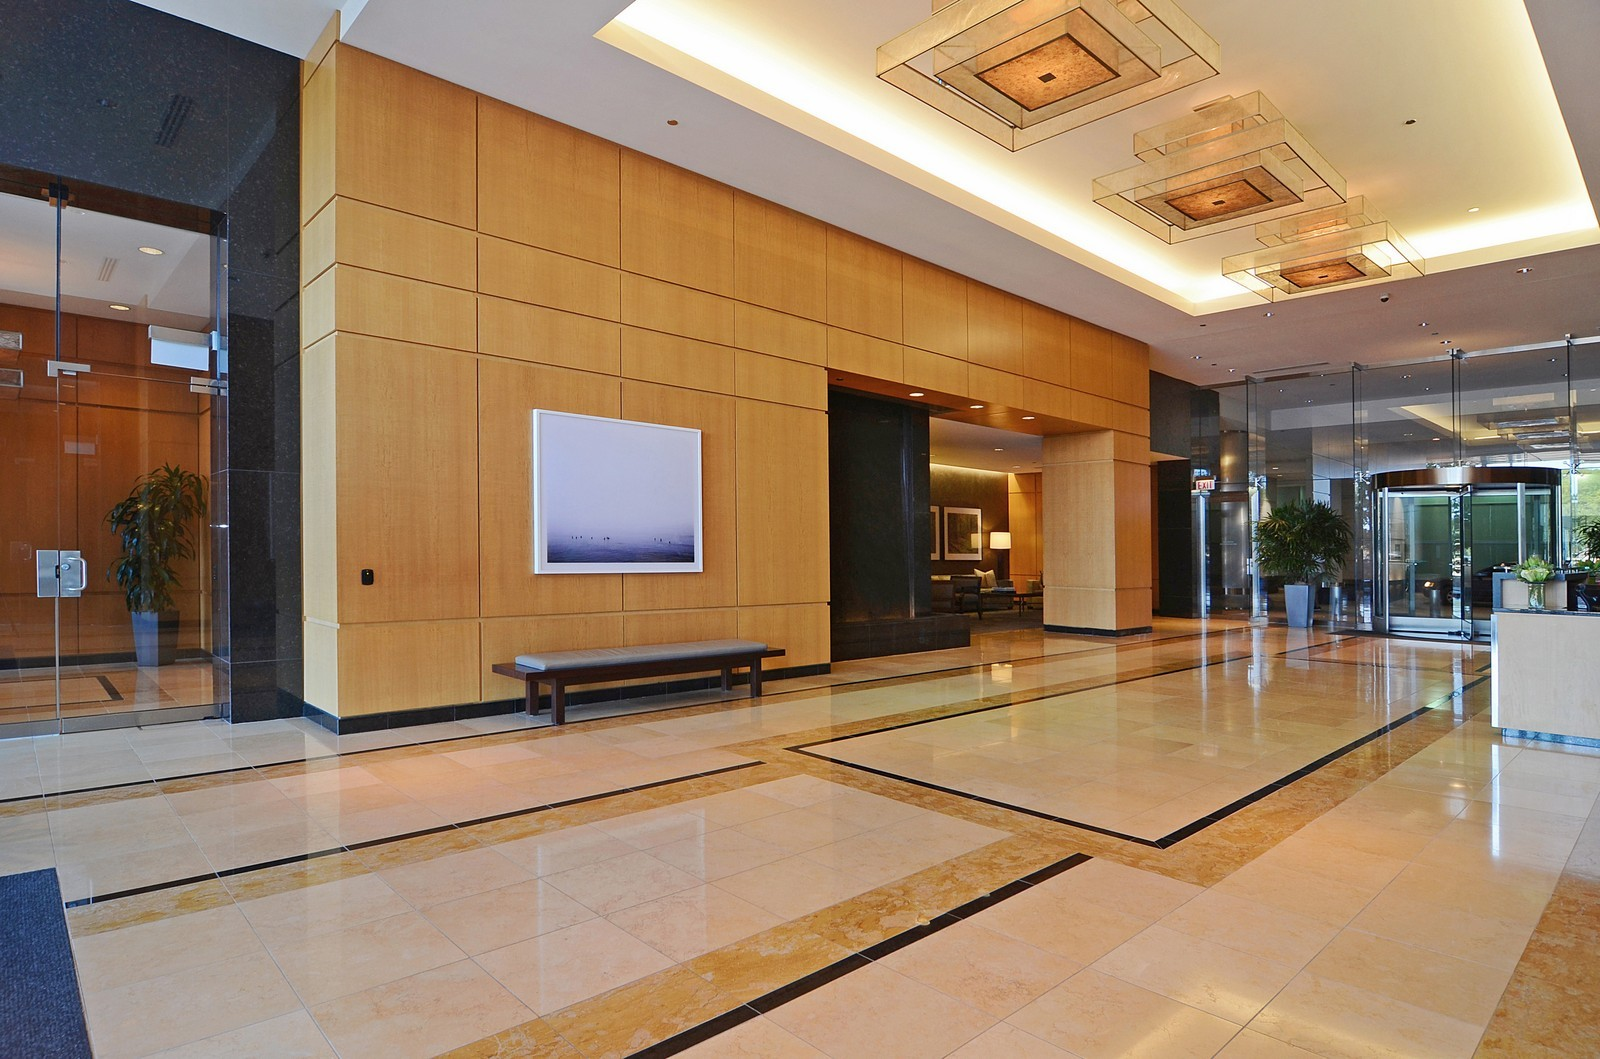 Real Estate Photography - 600 N Lake Shore Dr, Unit 2601, Chicago, IL, 60611 - Lobby